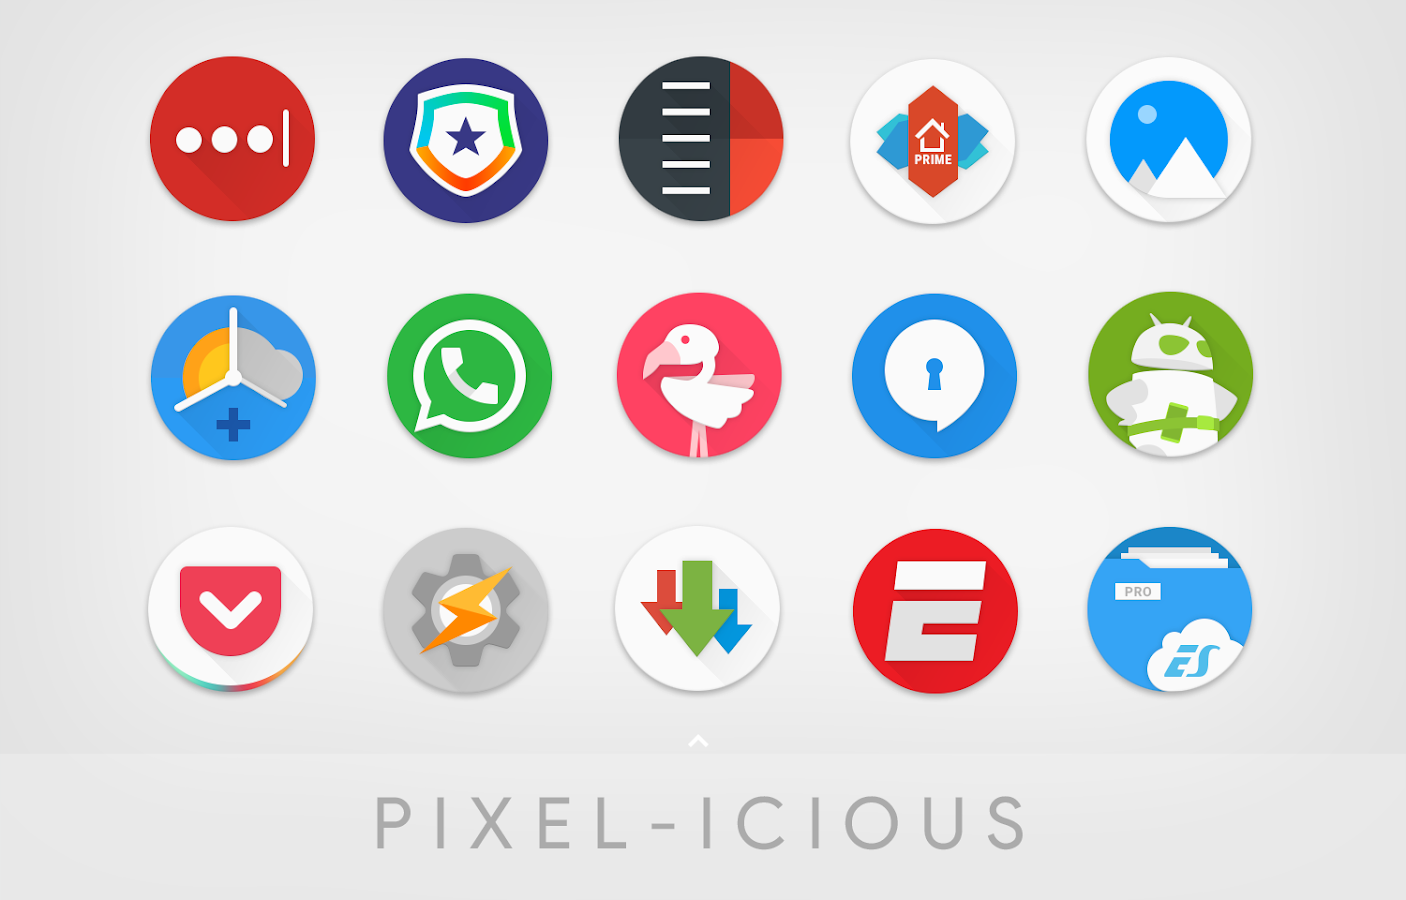 PIXELICIOUS ICON PACK Screenshot 2